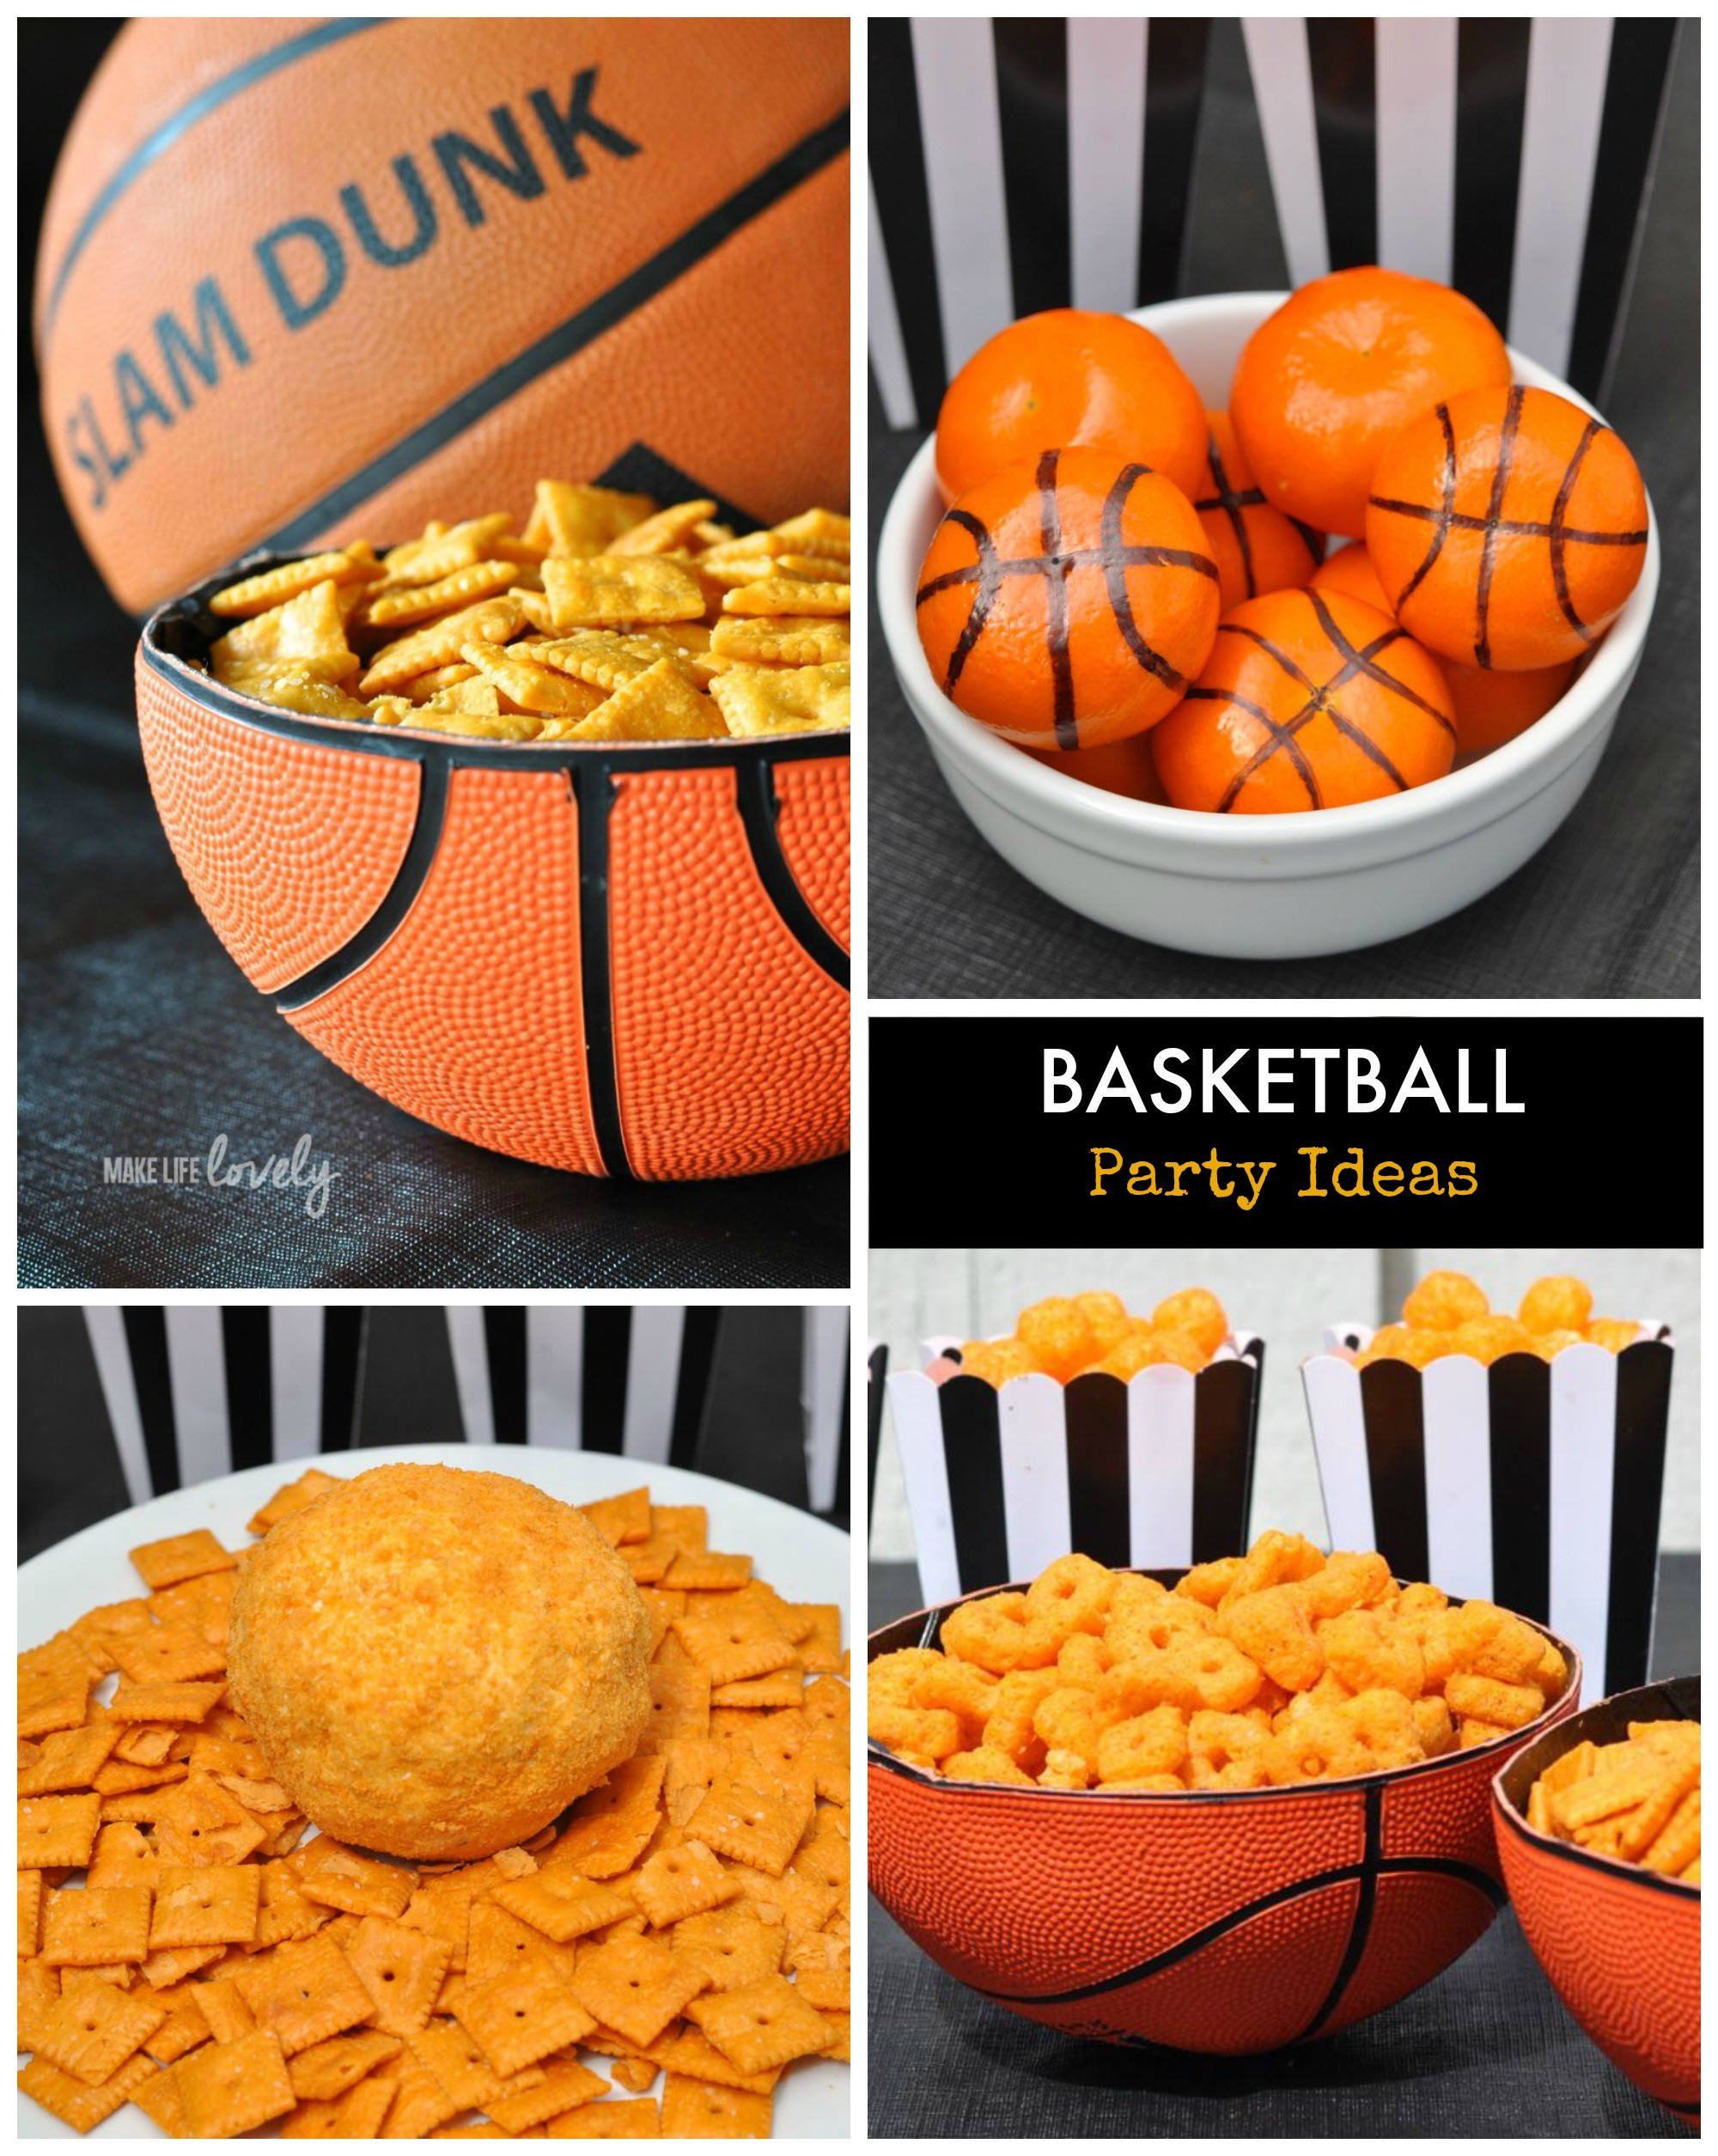 Best ideas about Basketball Birthday Party . Save or Pin Creative Basketball Party Ideas Make Life Lovely Now.